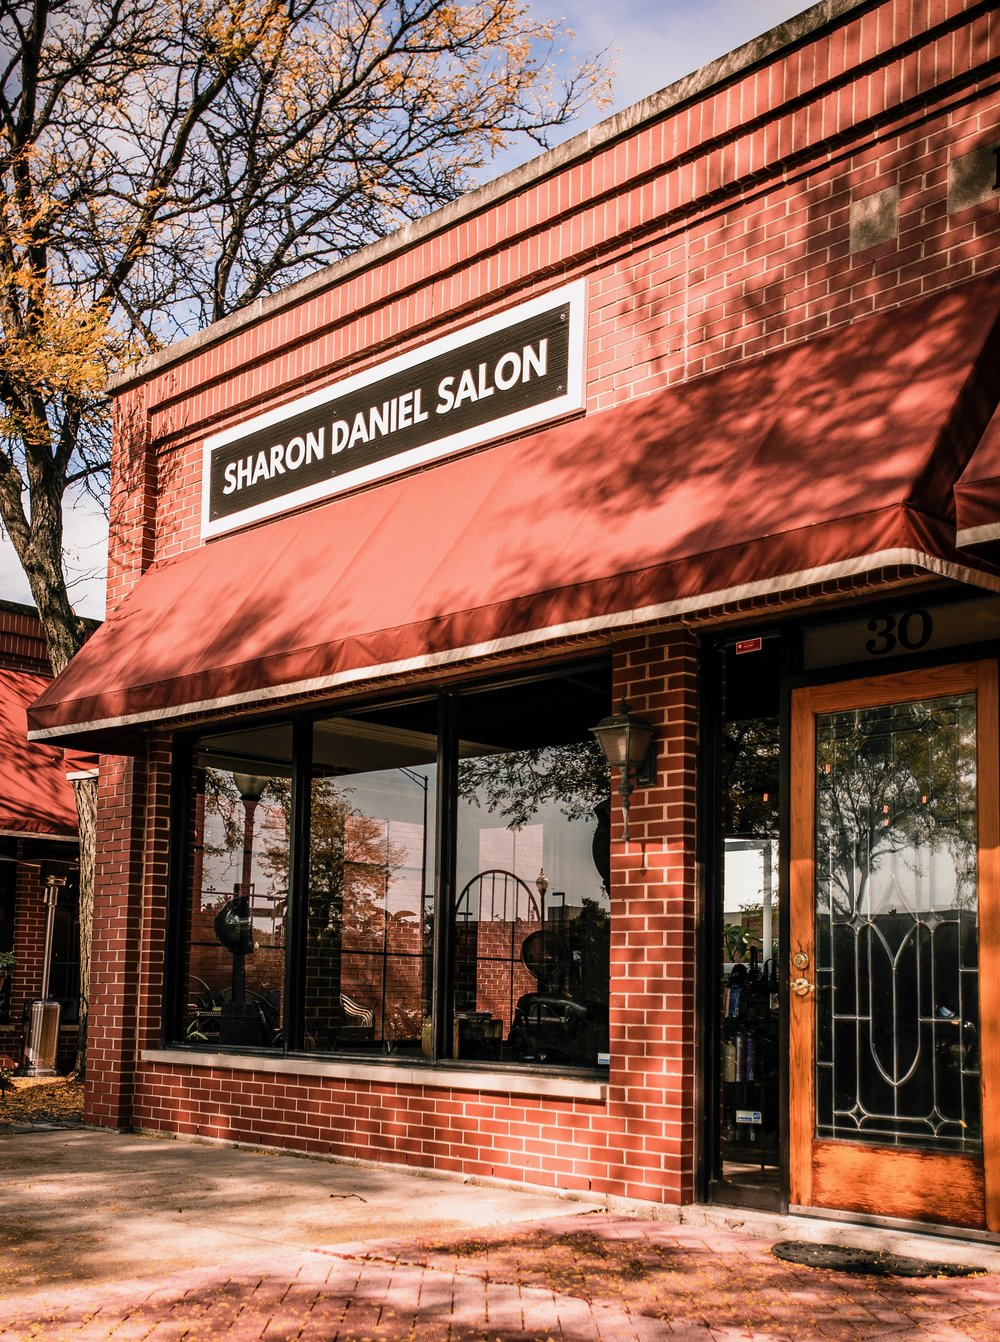 Sharon Daniel Salon 30 W. Schaumburg Road Schaumburg, IL 60194 .jpg